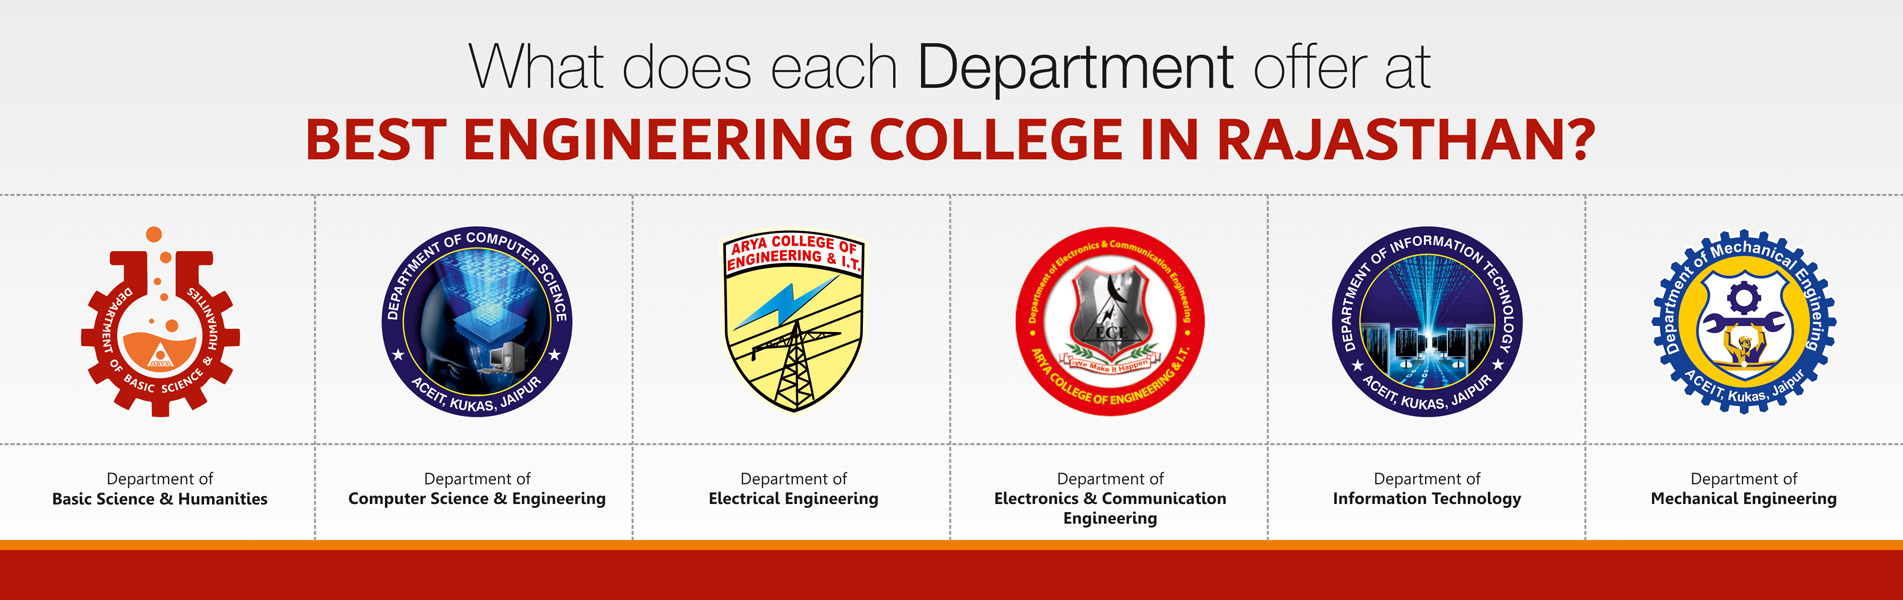 What-does-each-department-offer-at-Best-Engineering-Colleges-in-Rajasthan